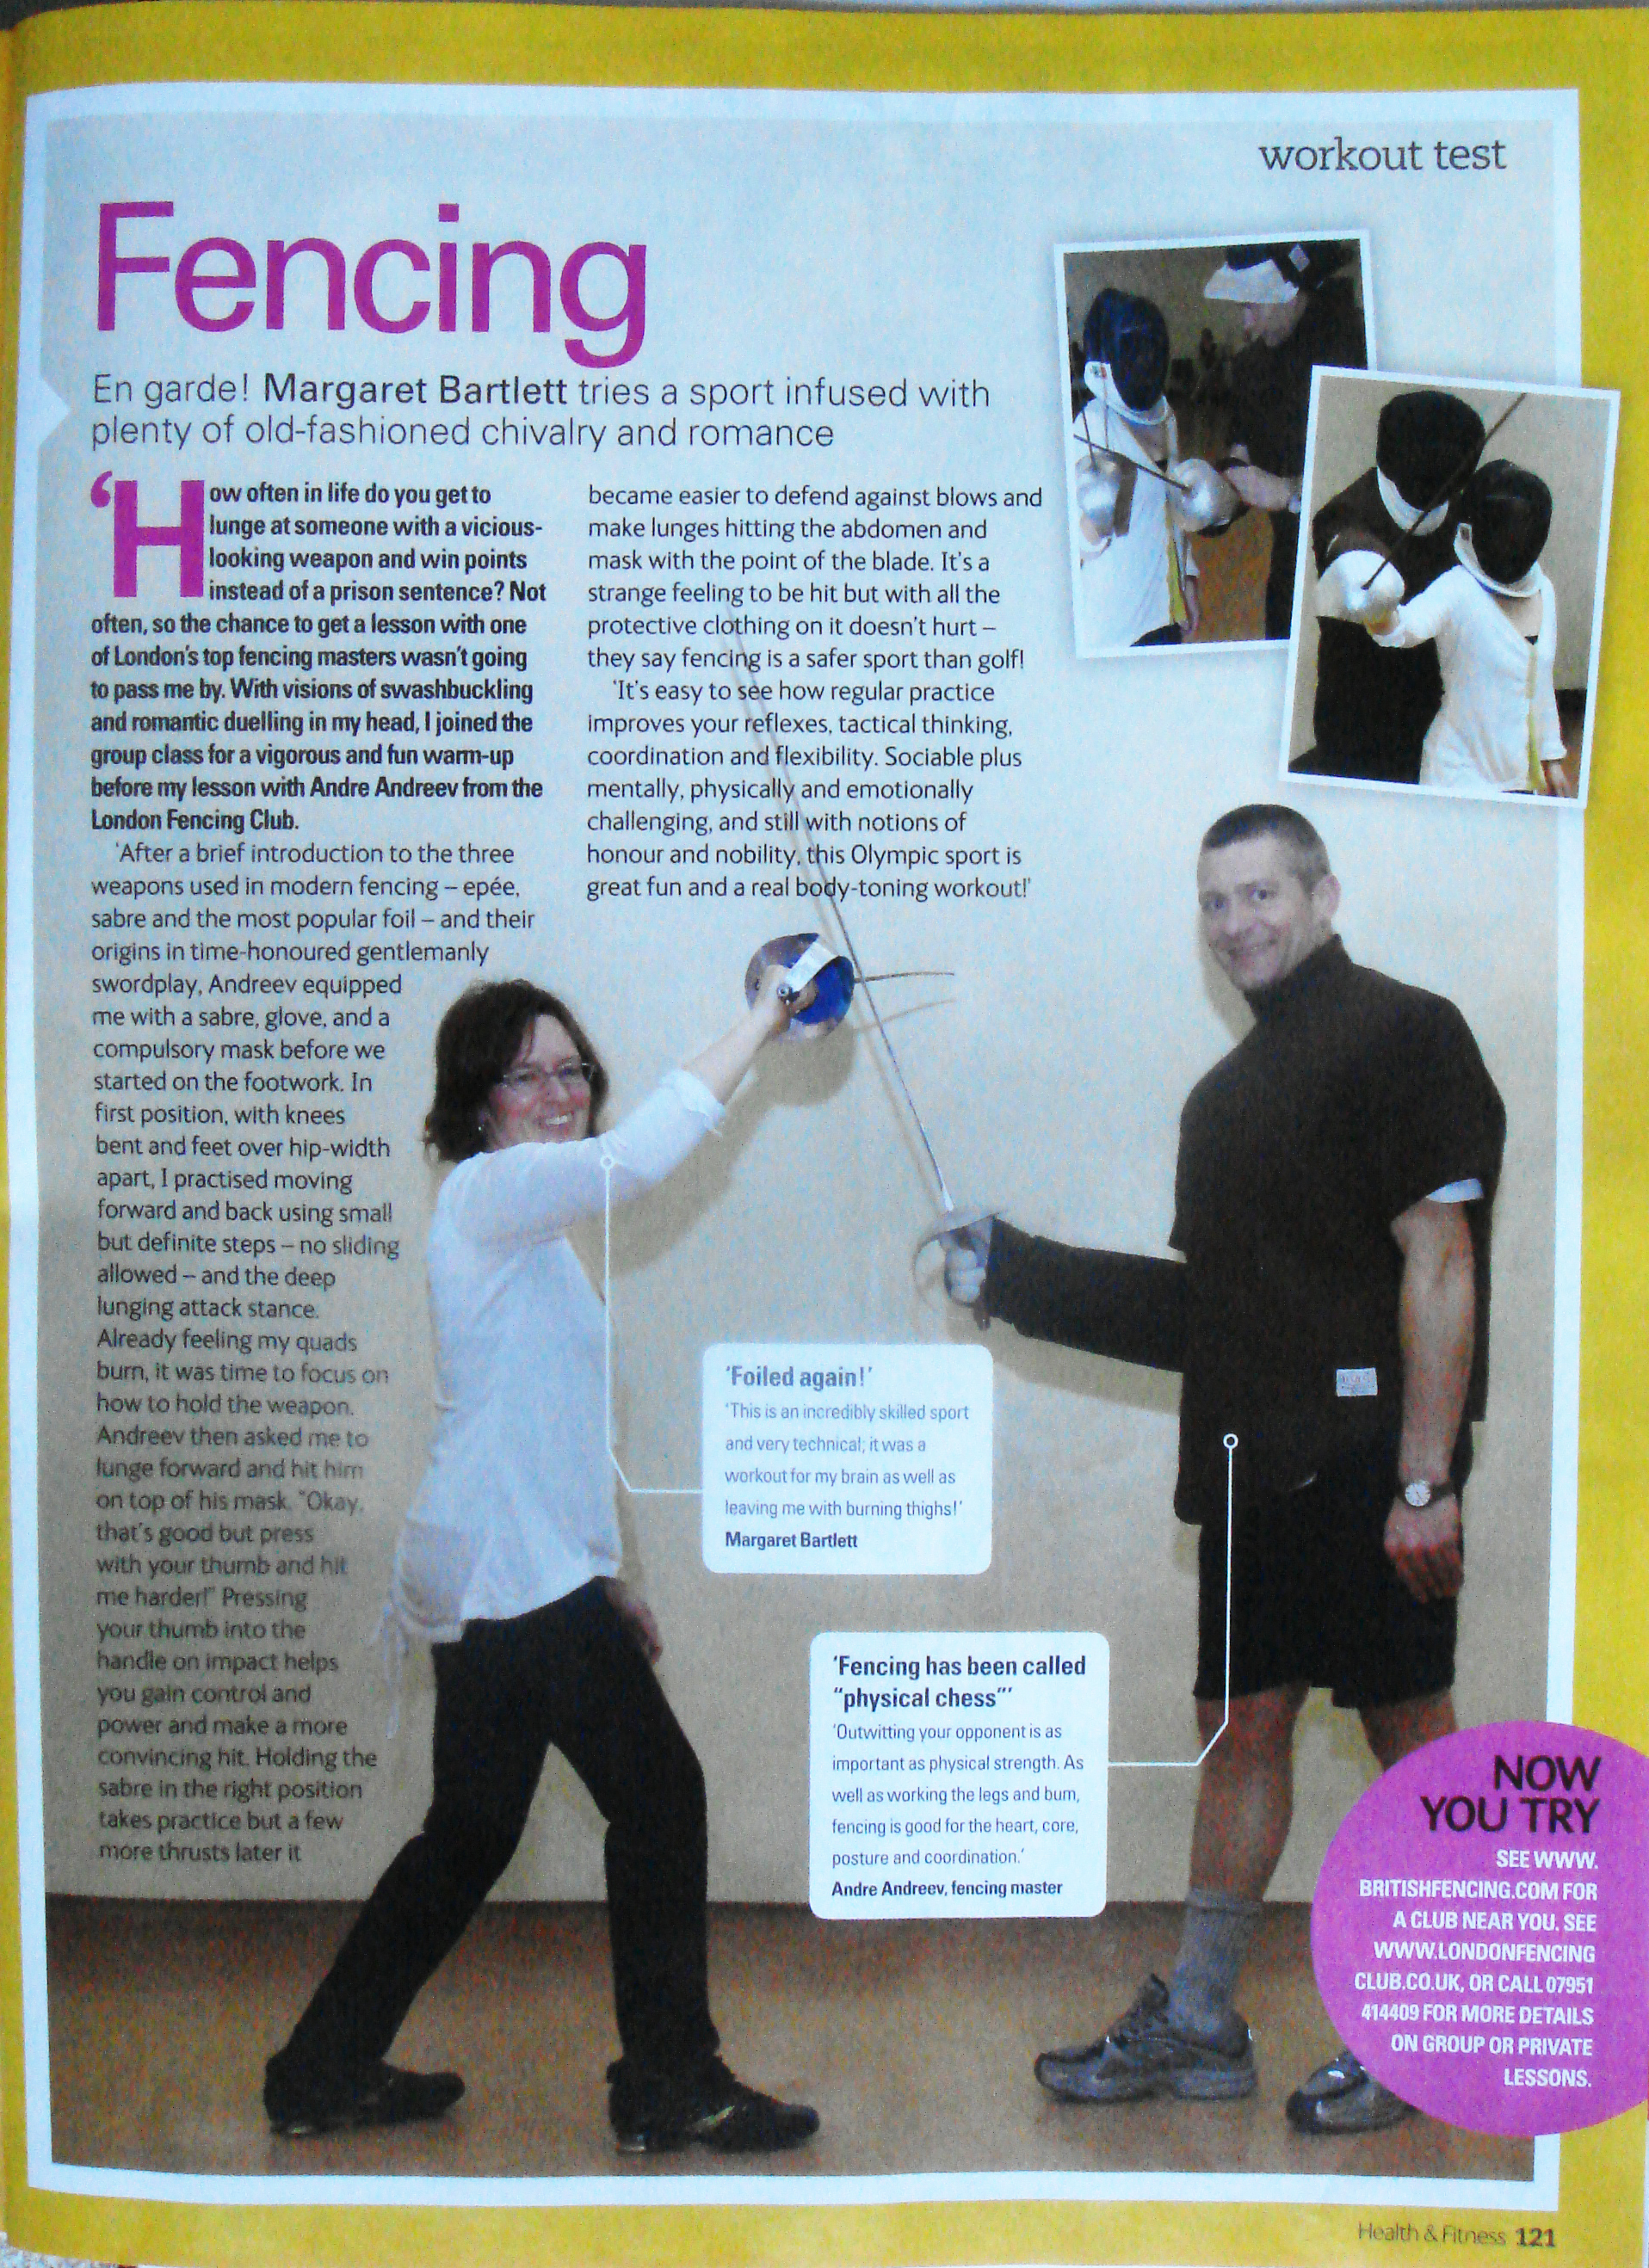 Fencing article Health & Fitness, April 2008